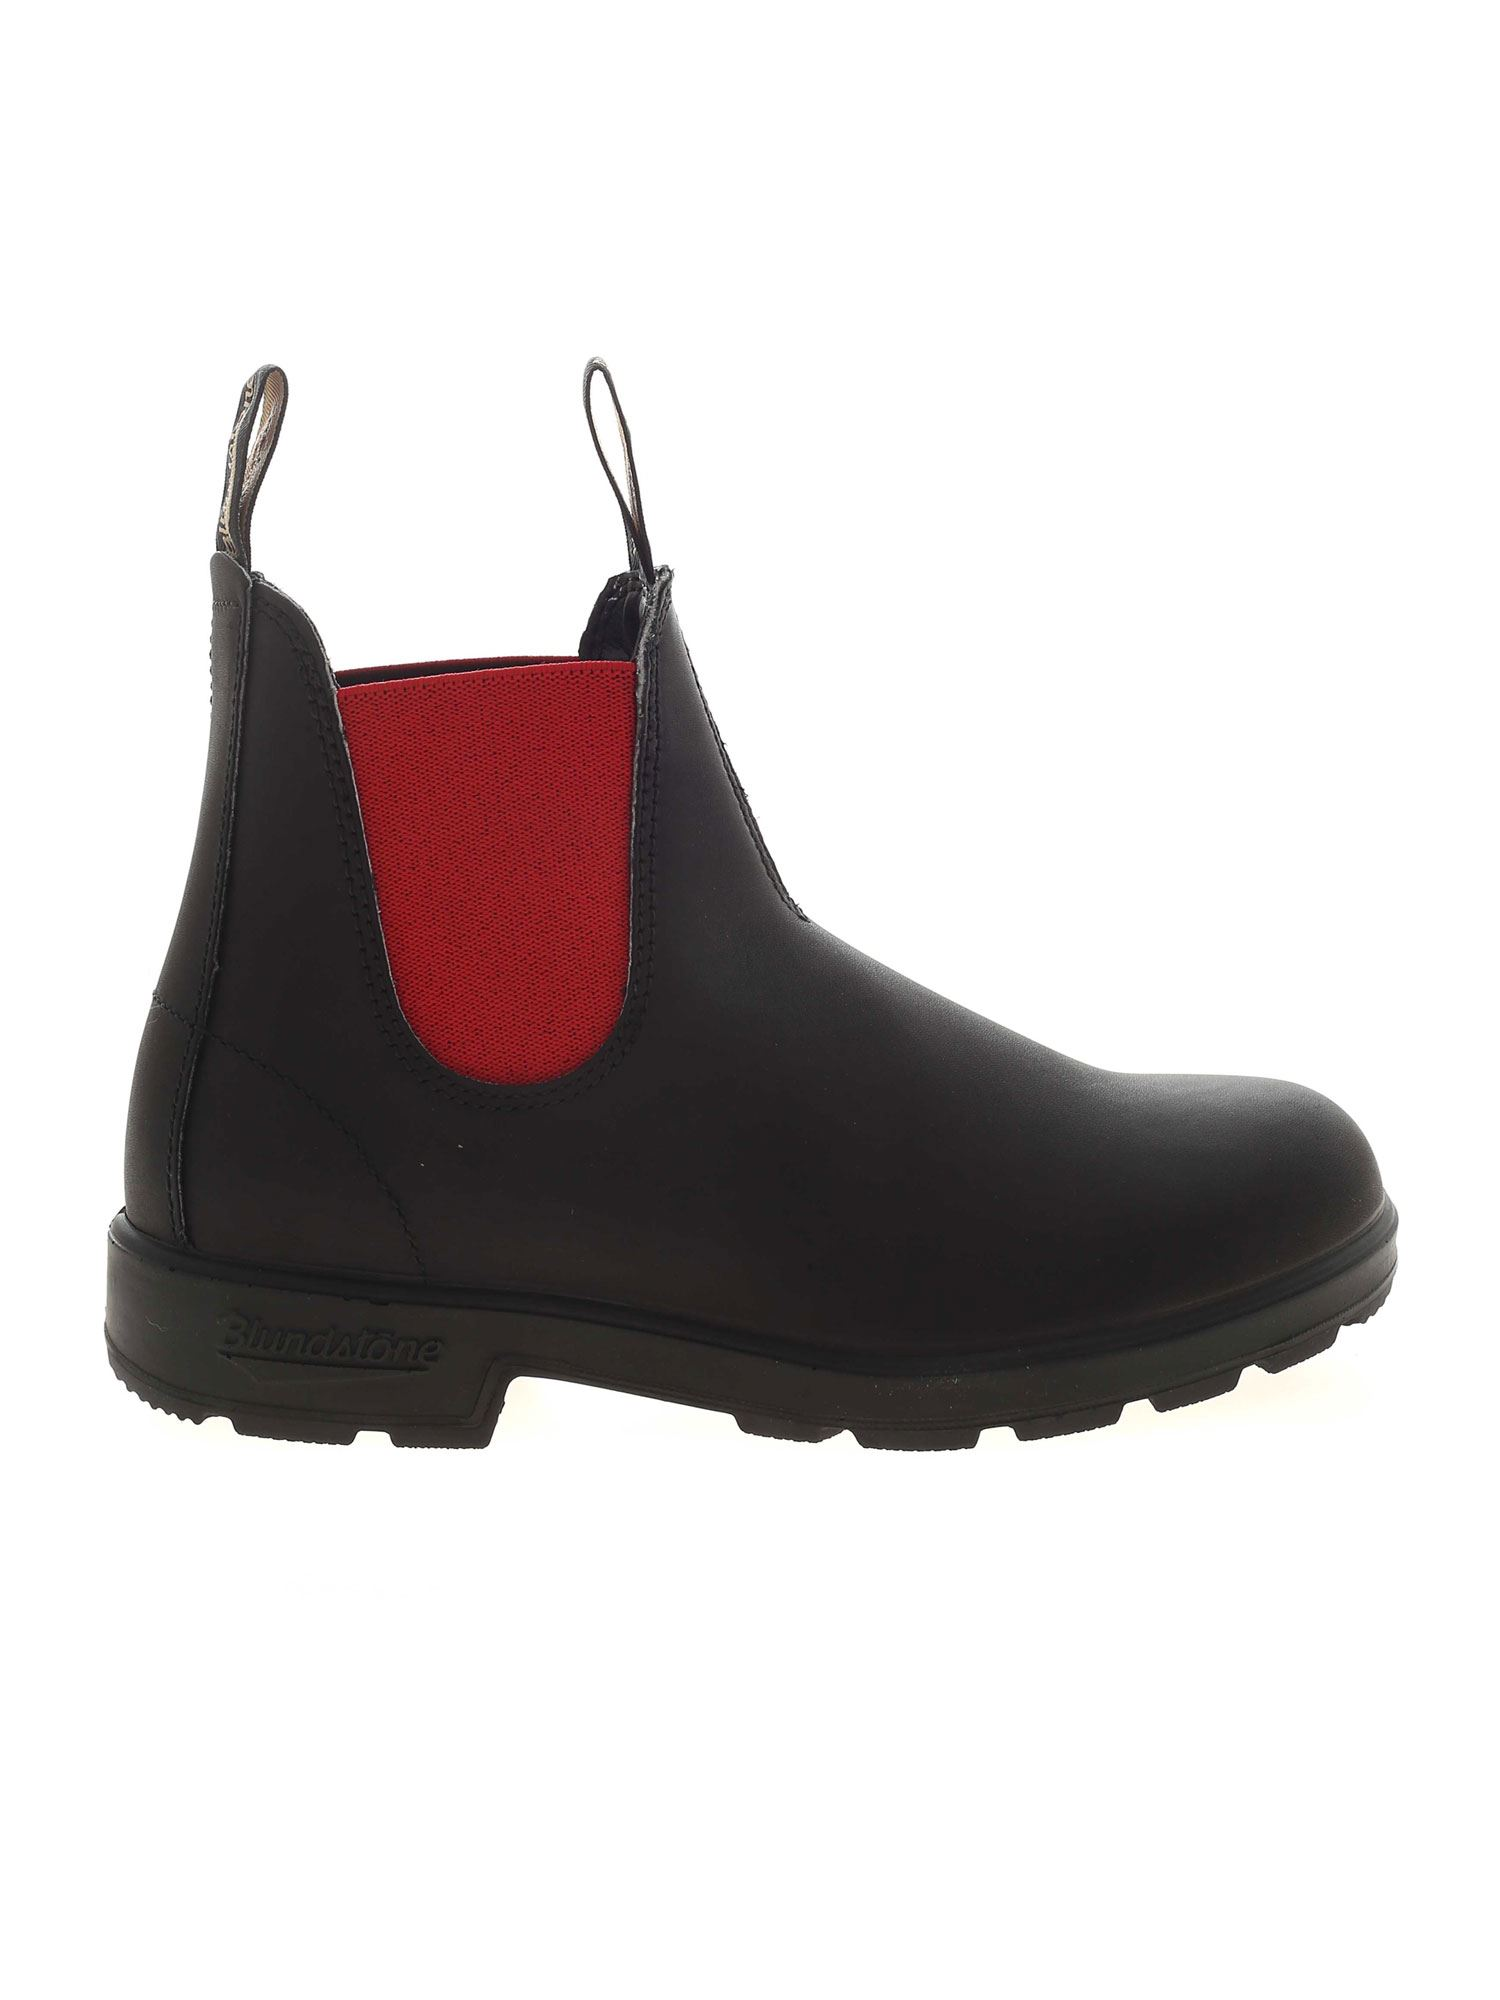 Blundstone CHELSEA BLACK ANKLE BOOTS WITH RED STRETCH INSERTS